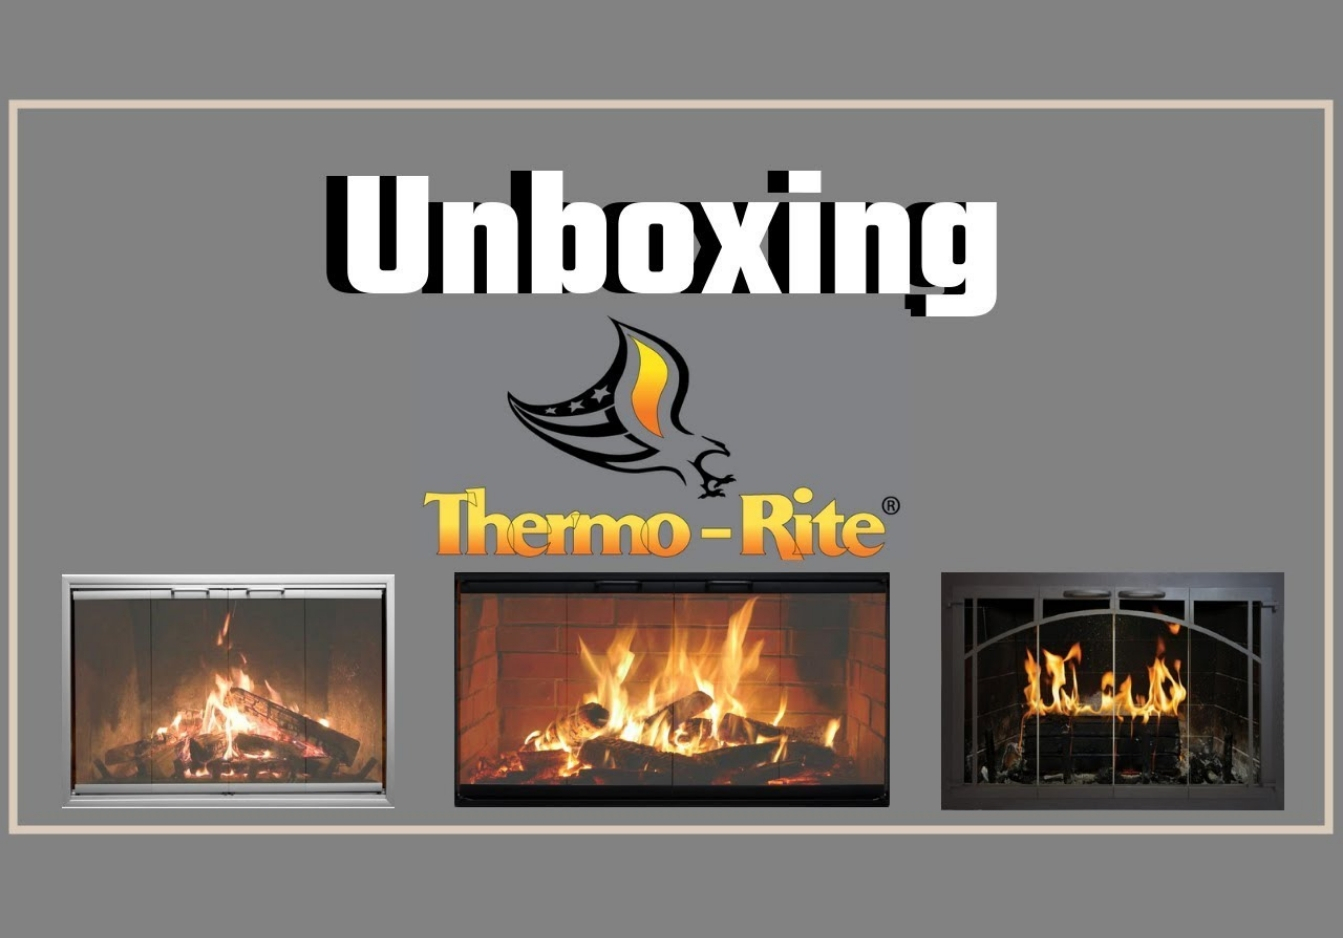 Unboxing Thermo-Rite Fireplace Doors